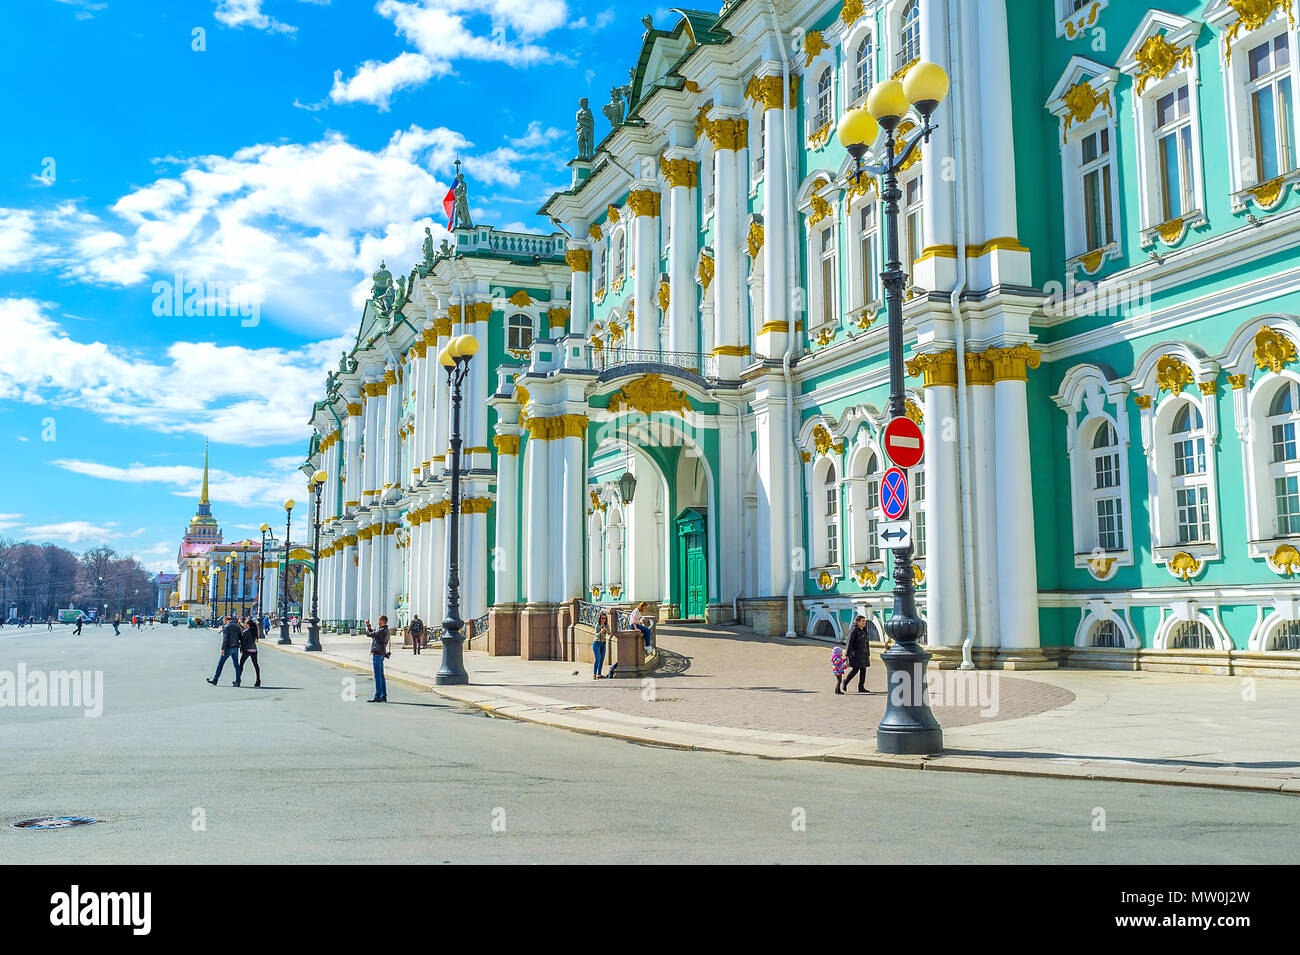 SAINT PETERSBURG, RUSSIA - APRIL 27, 2015: Winter Palace is one of the most beautiful edifices in the city with unique decorations, on April 27 in S.  - Stock Image